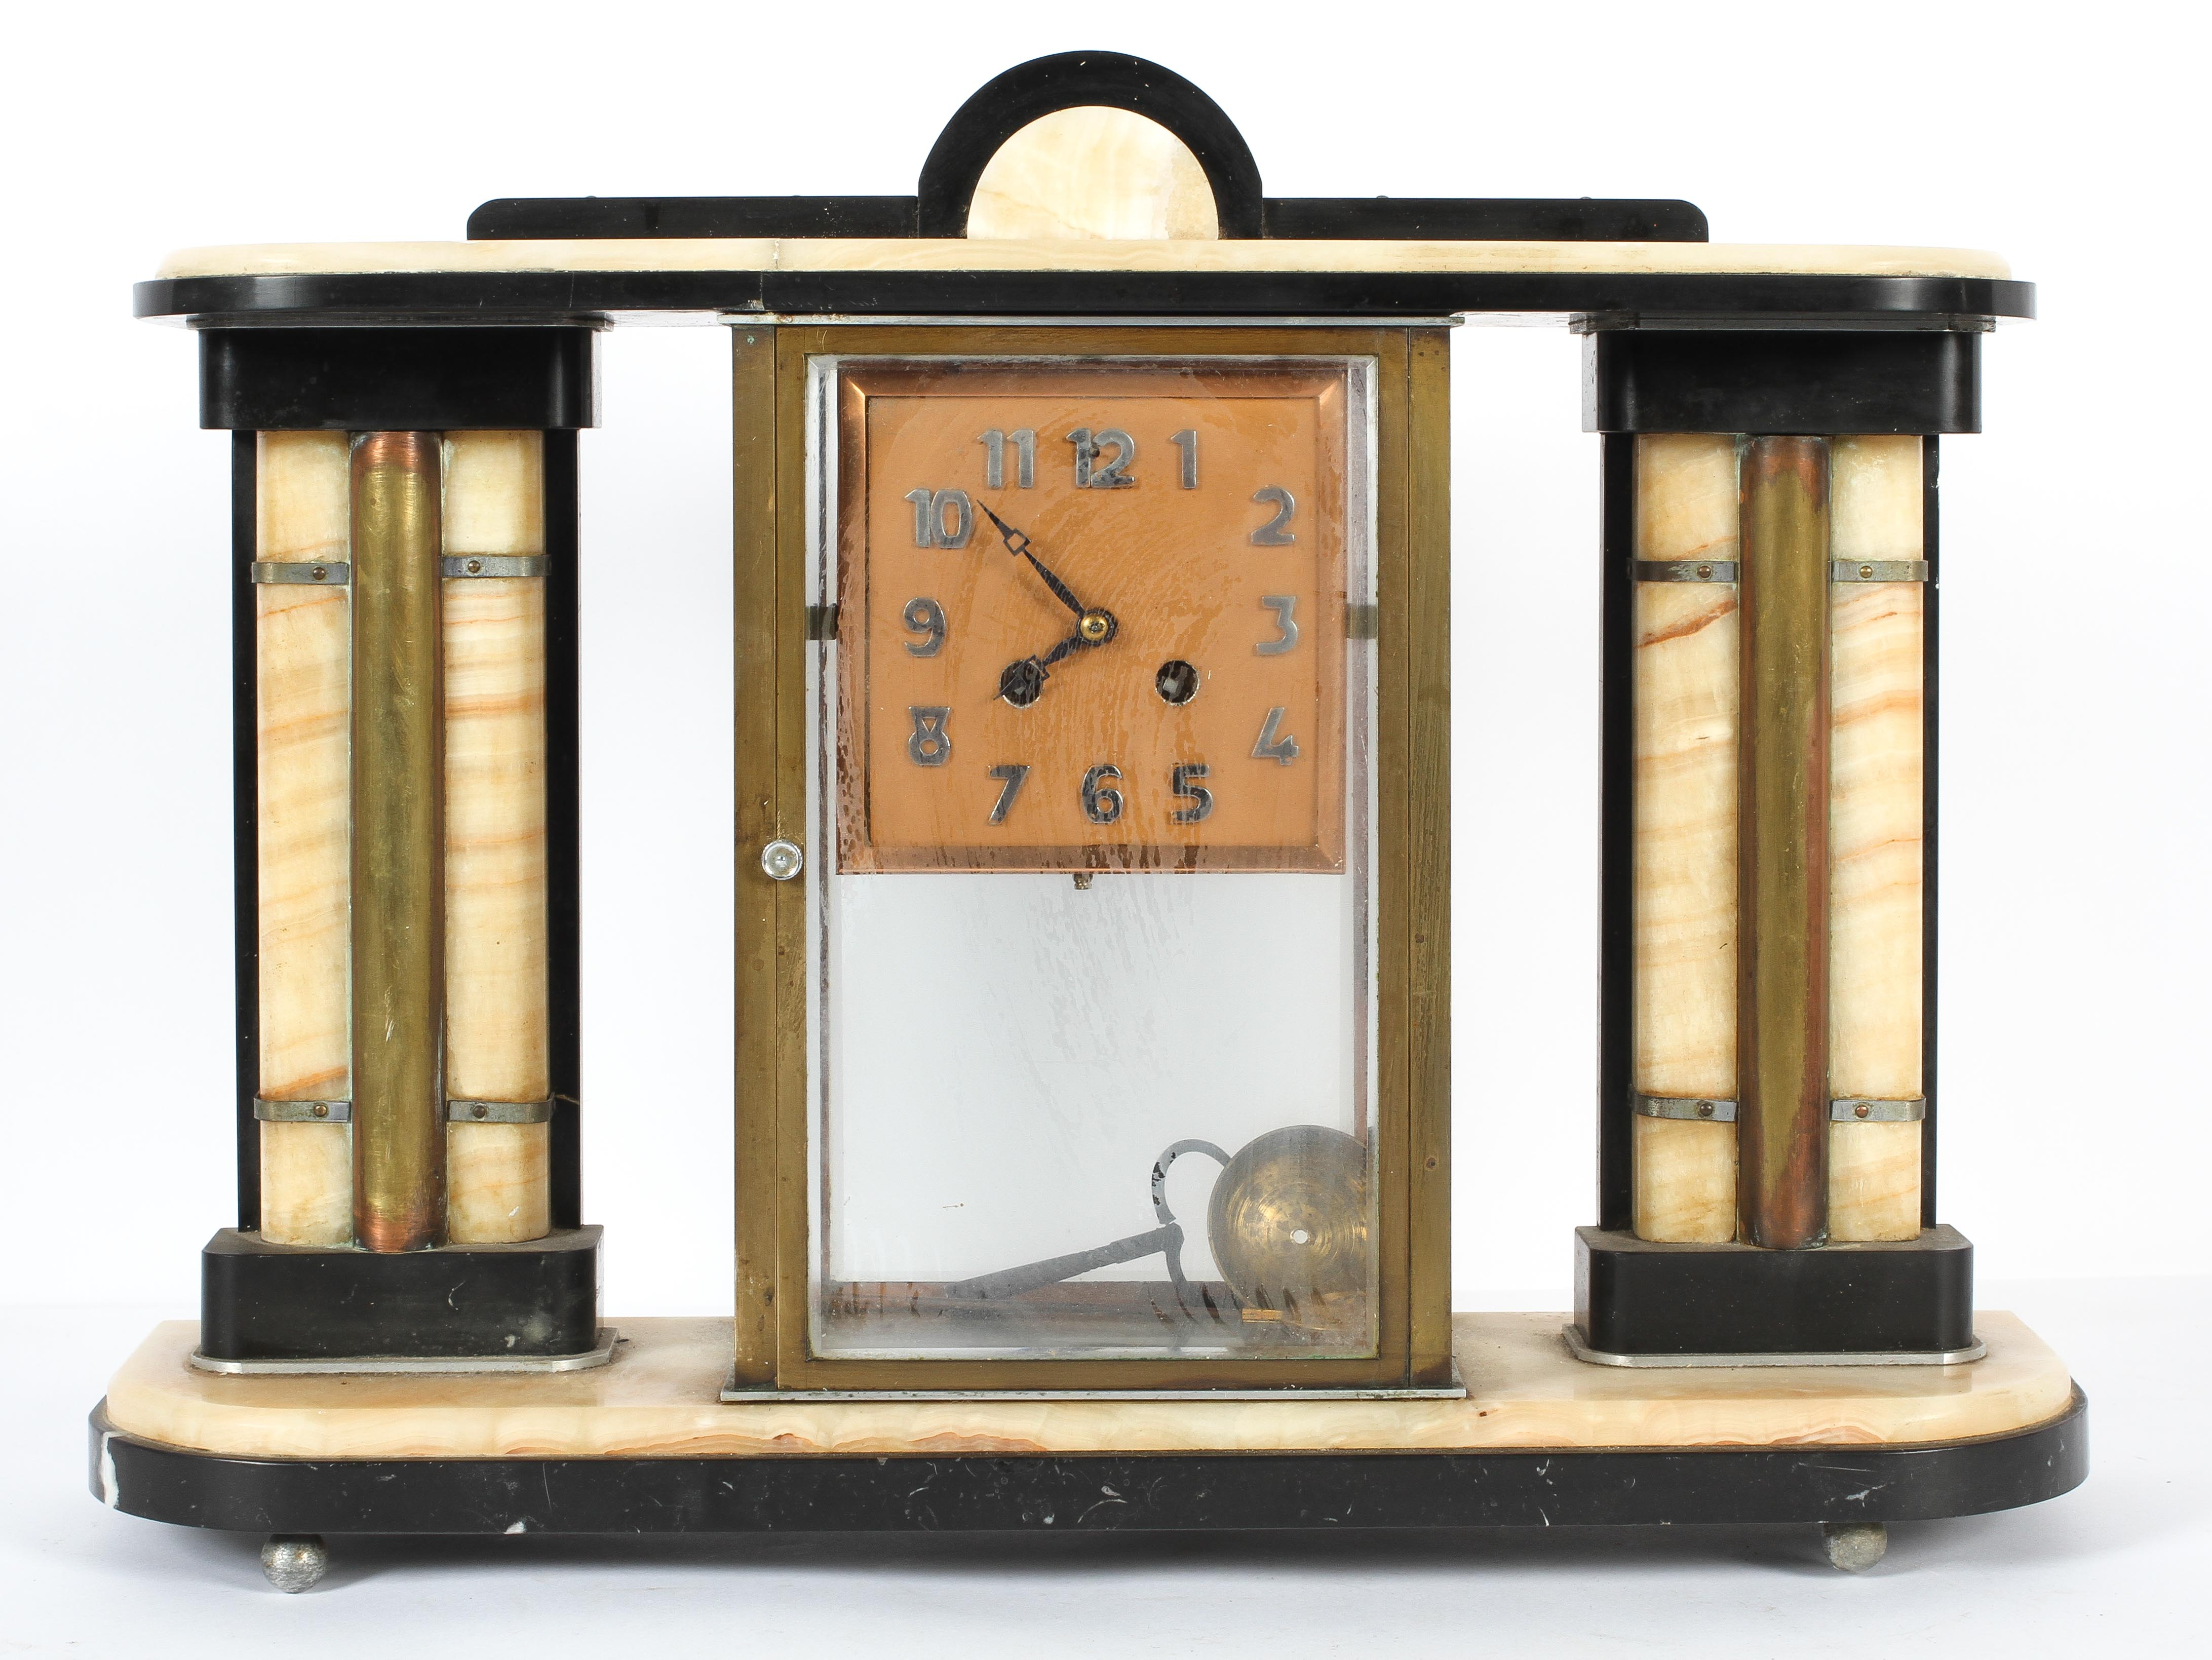 An art deco style clock garniture in alabaster and black slate or marble,